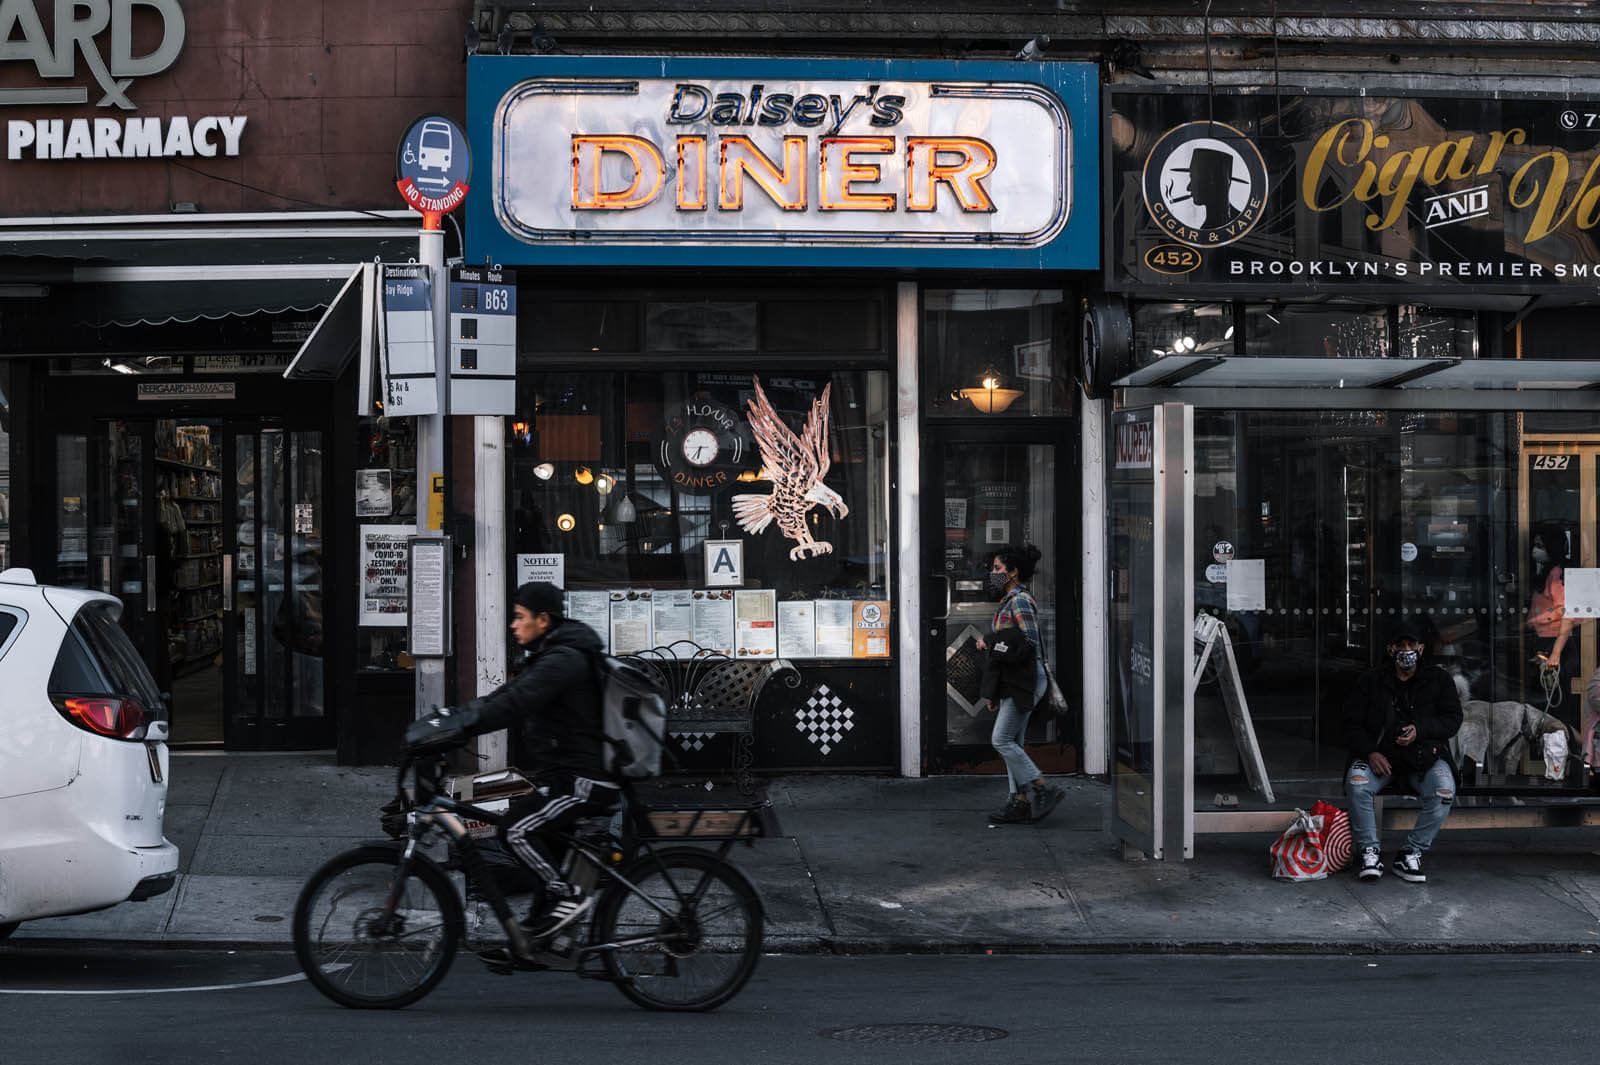 Daisy's Diner in Brooklyn on 5th ave in Park Slope